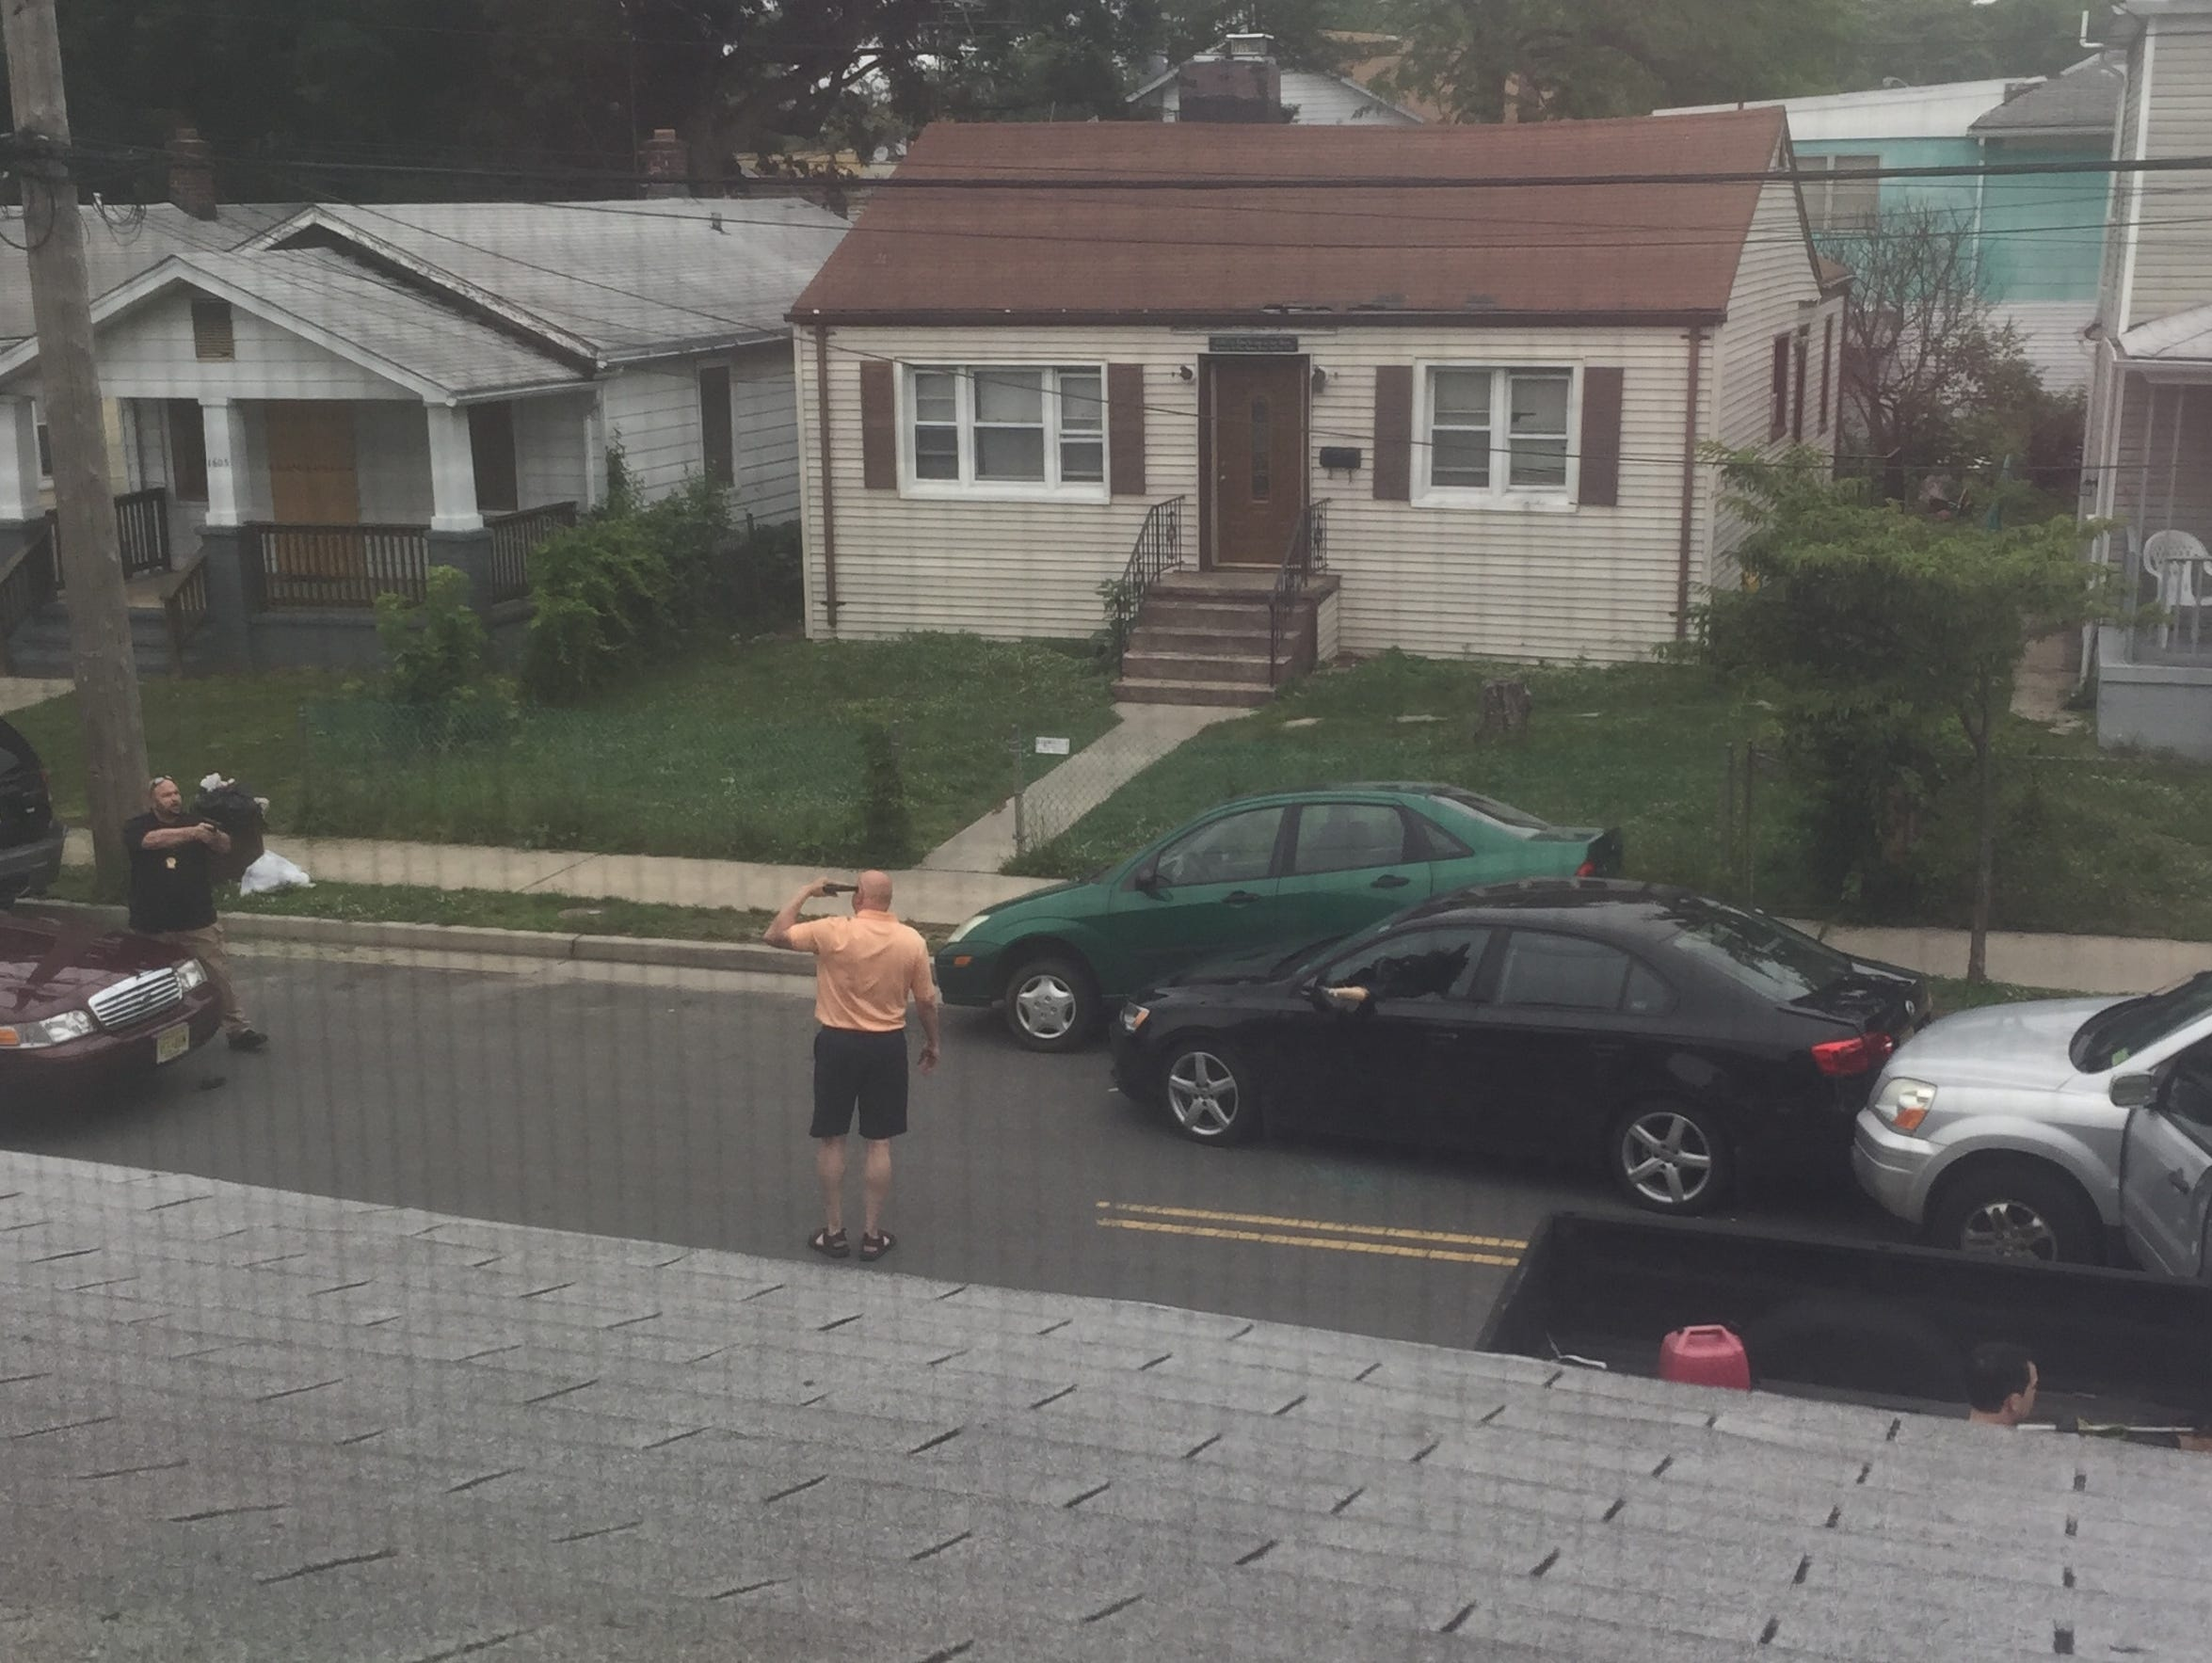 Philip Seidle, with his gun to his head, in a standoff